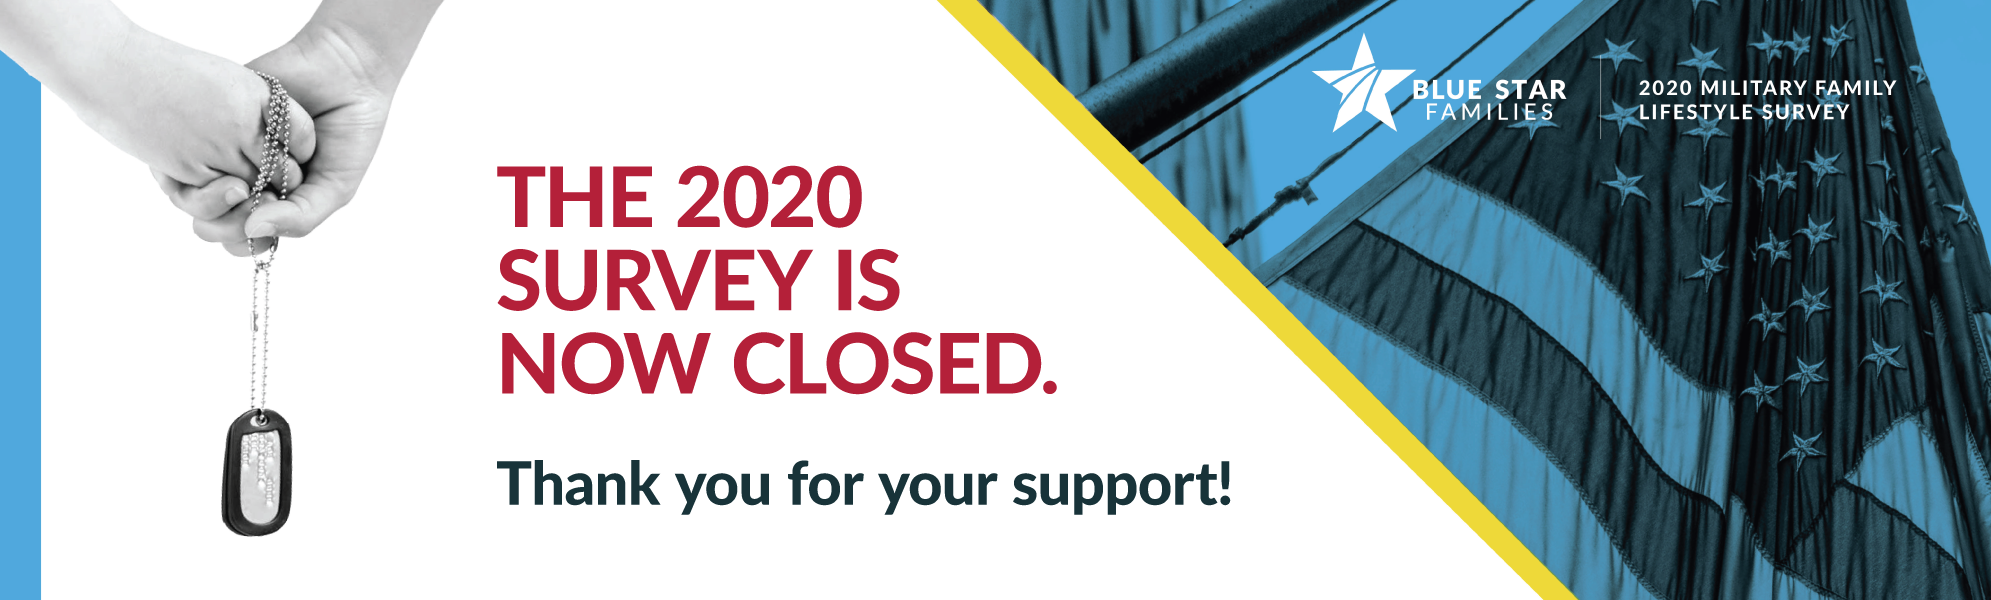 2020 Survey fielding closing graphic image